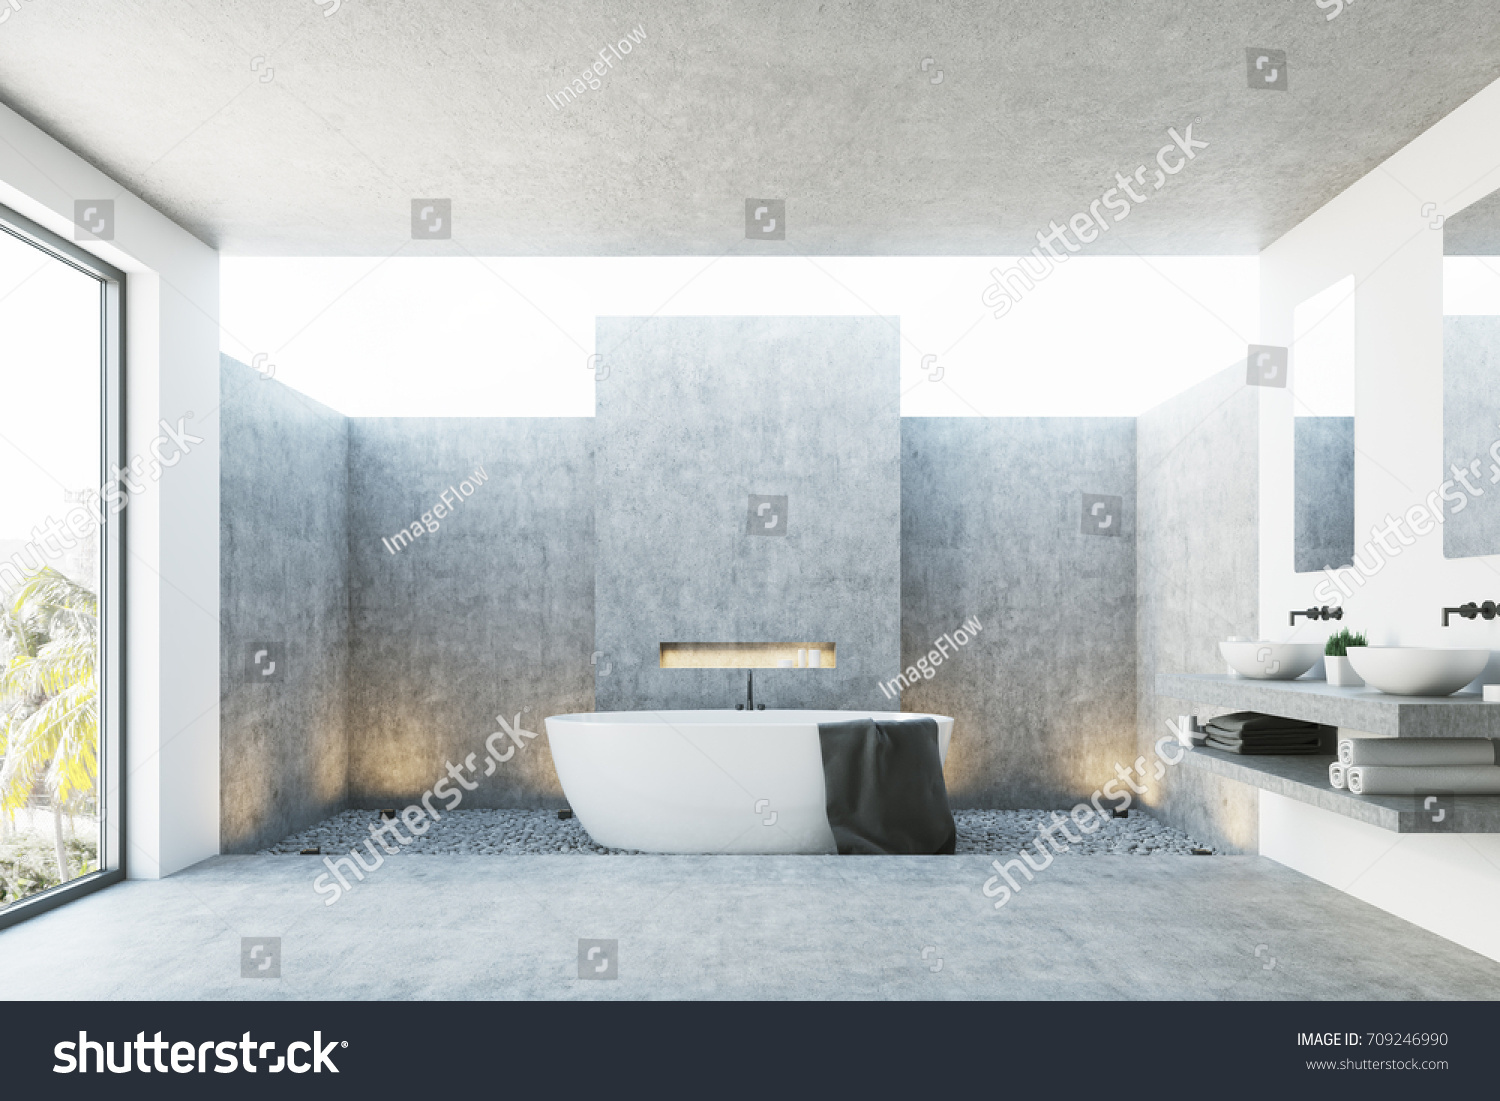 Concrete Bathroom White Tub Black Towel Stock Illustration 709246990 ...